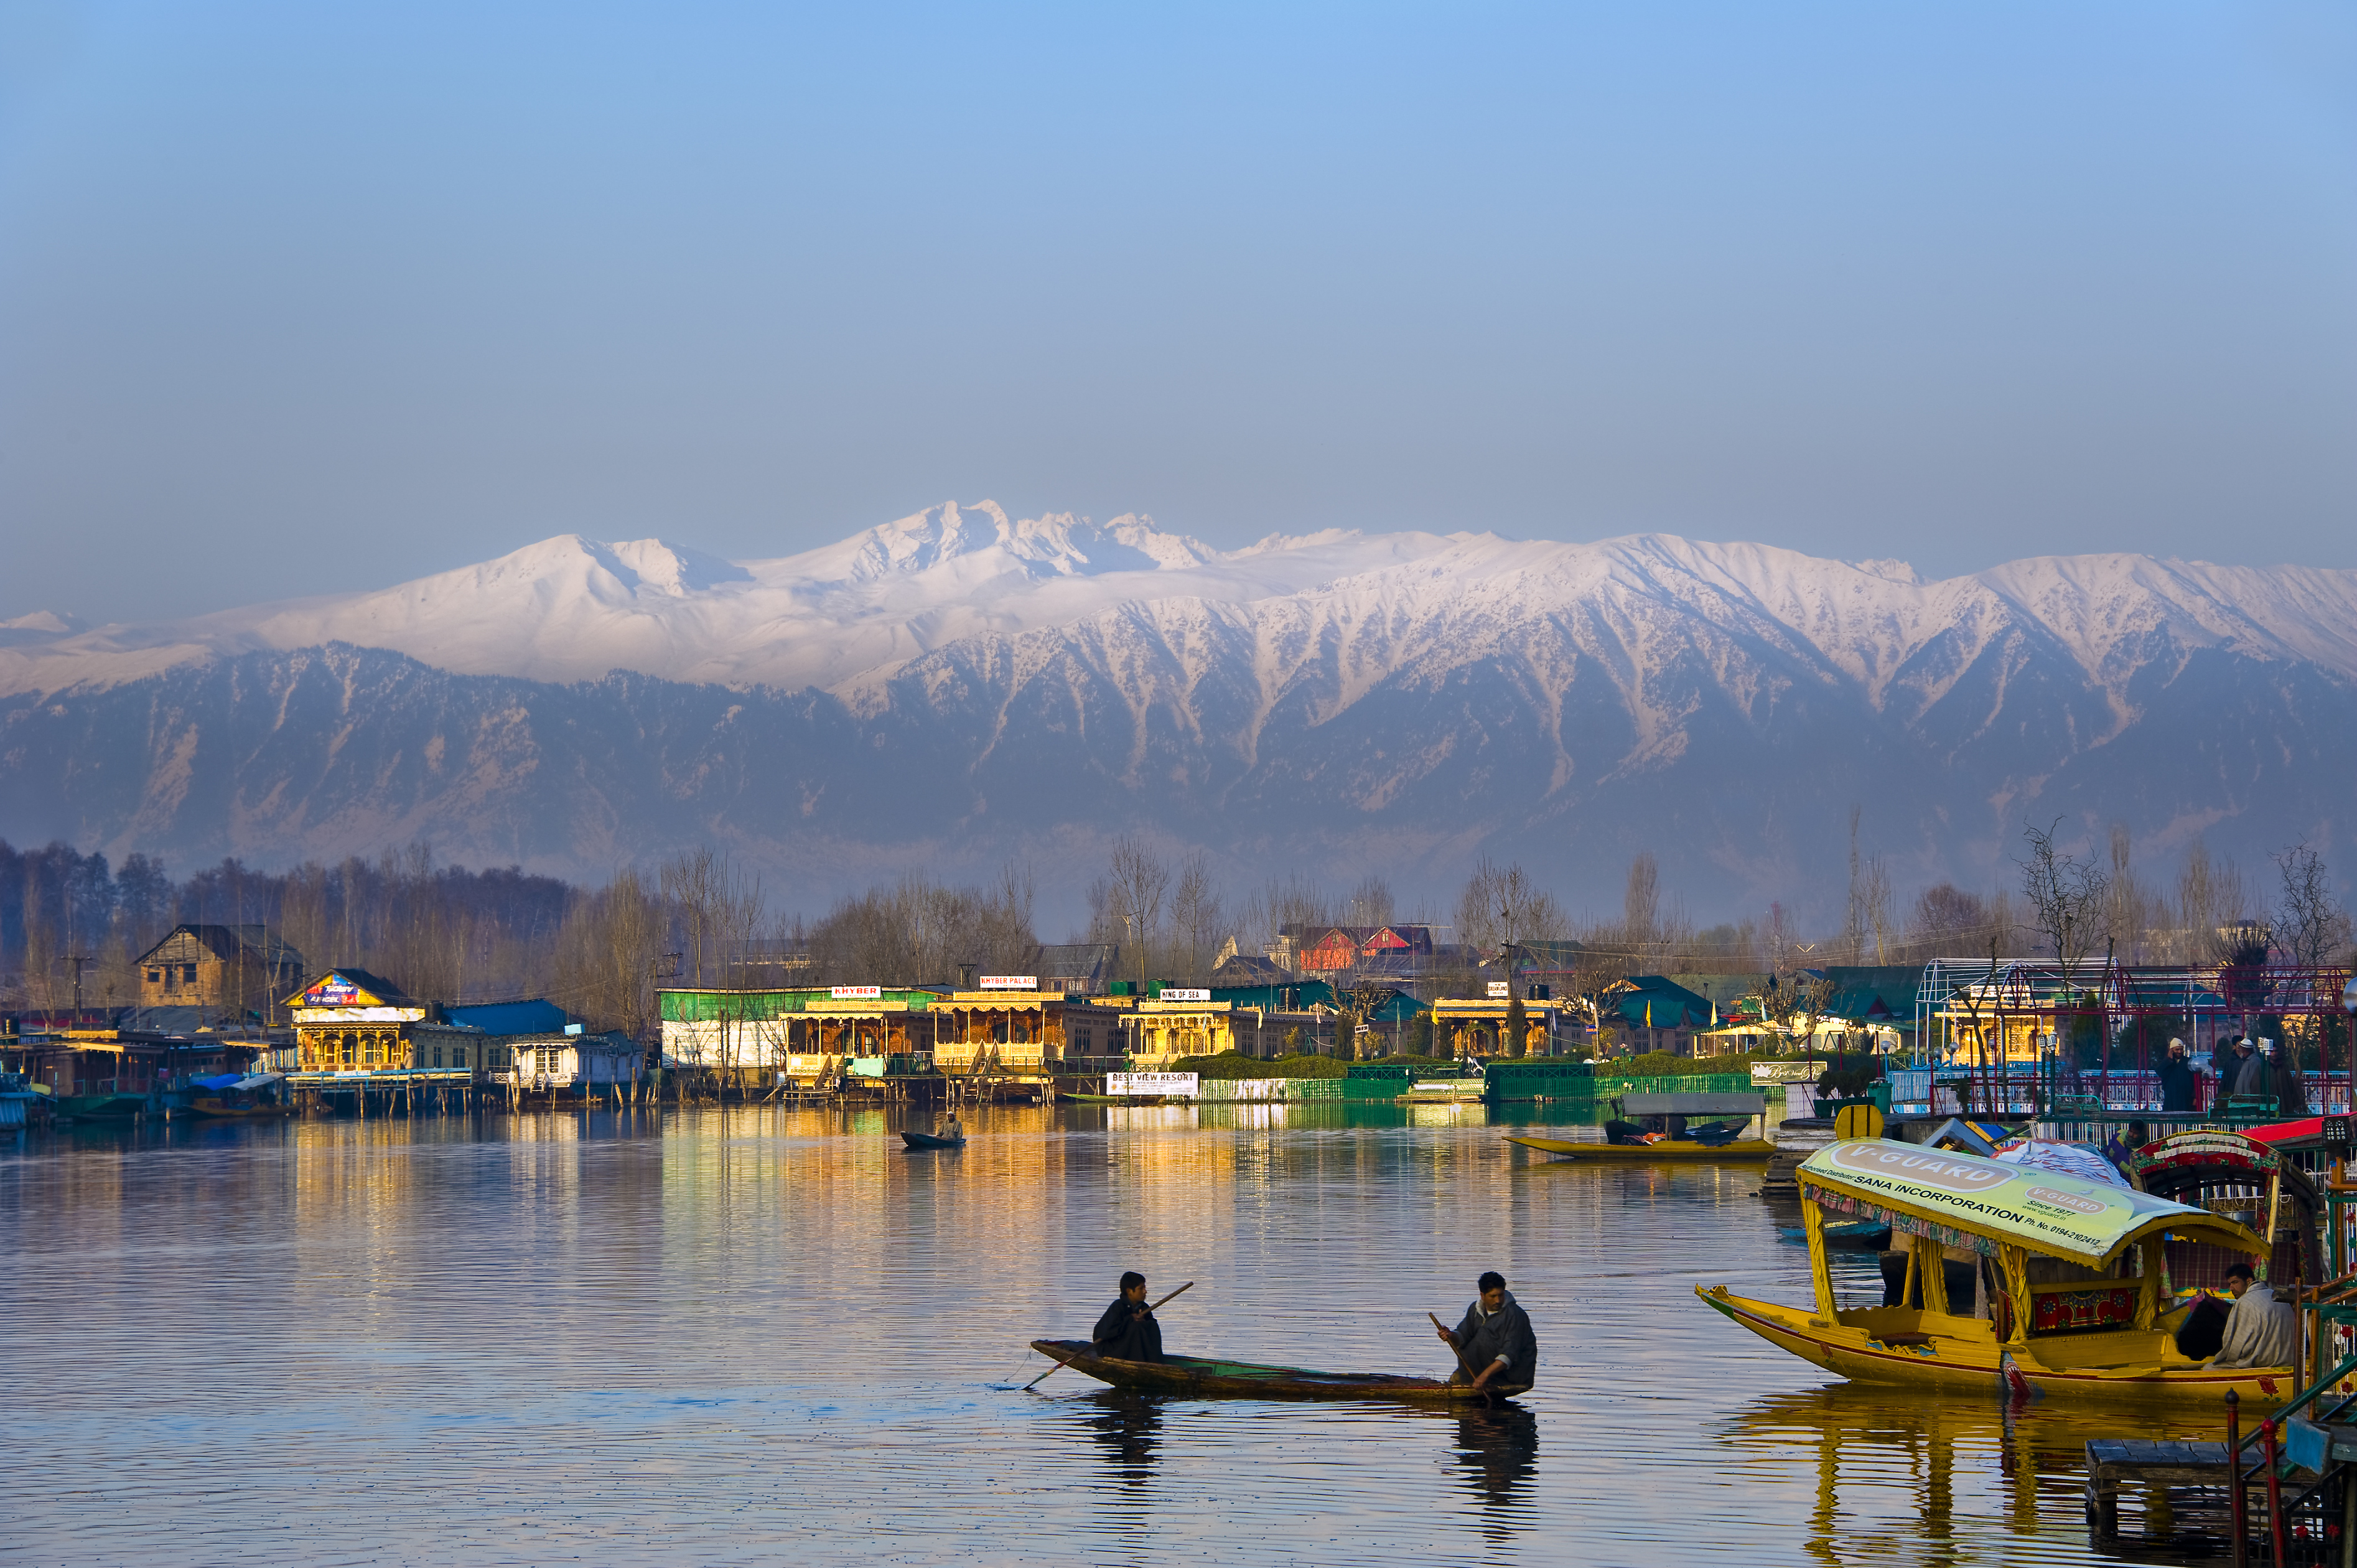 dal lake kashmir - place to visit for summer vacations in india with family